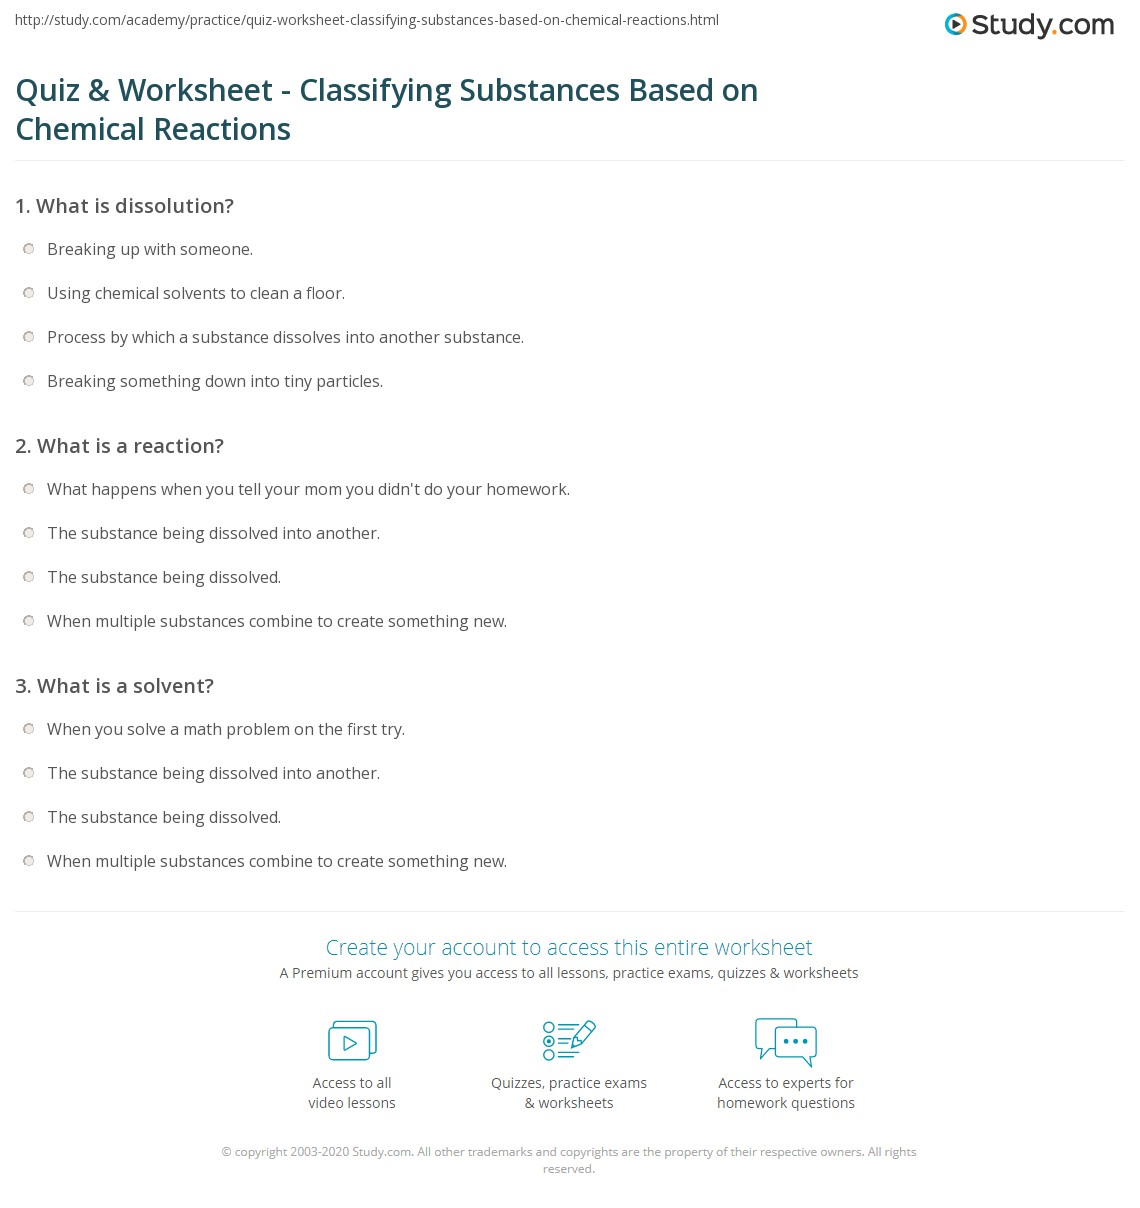 worksheet Classifying Chemical Reactions Worksheet Answer Key quiz worksheet classifying substances based on chemical print using reactions to identify worksheet